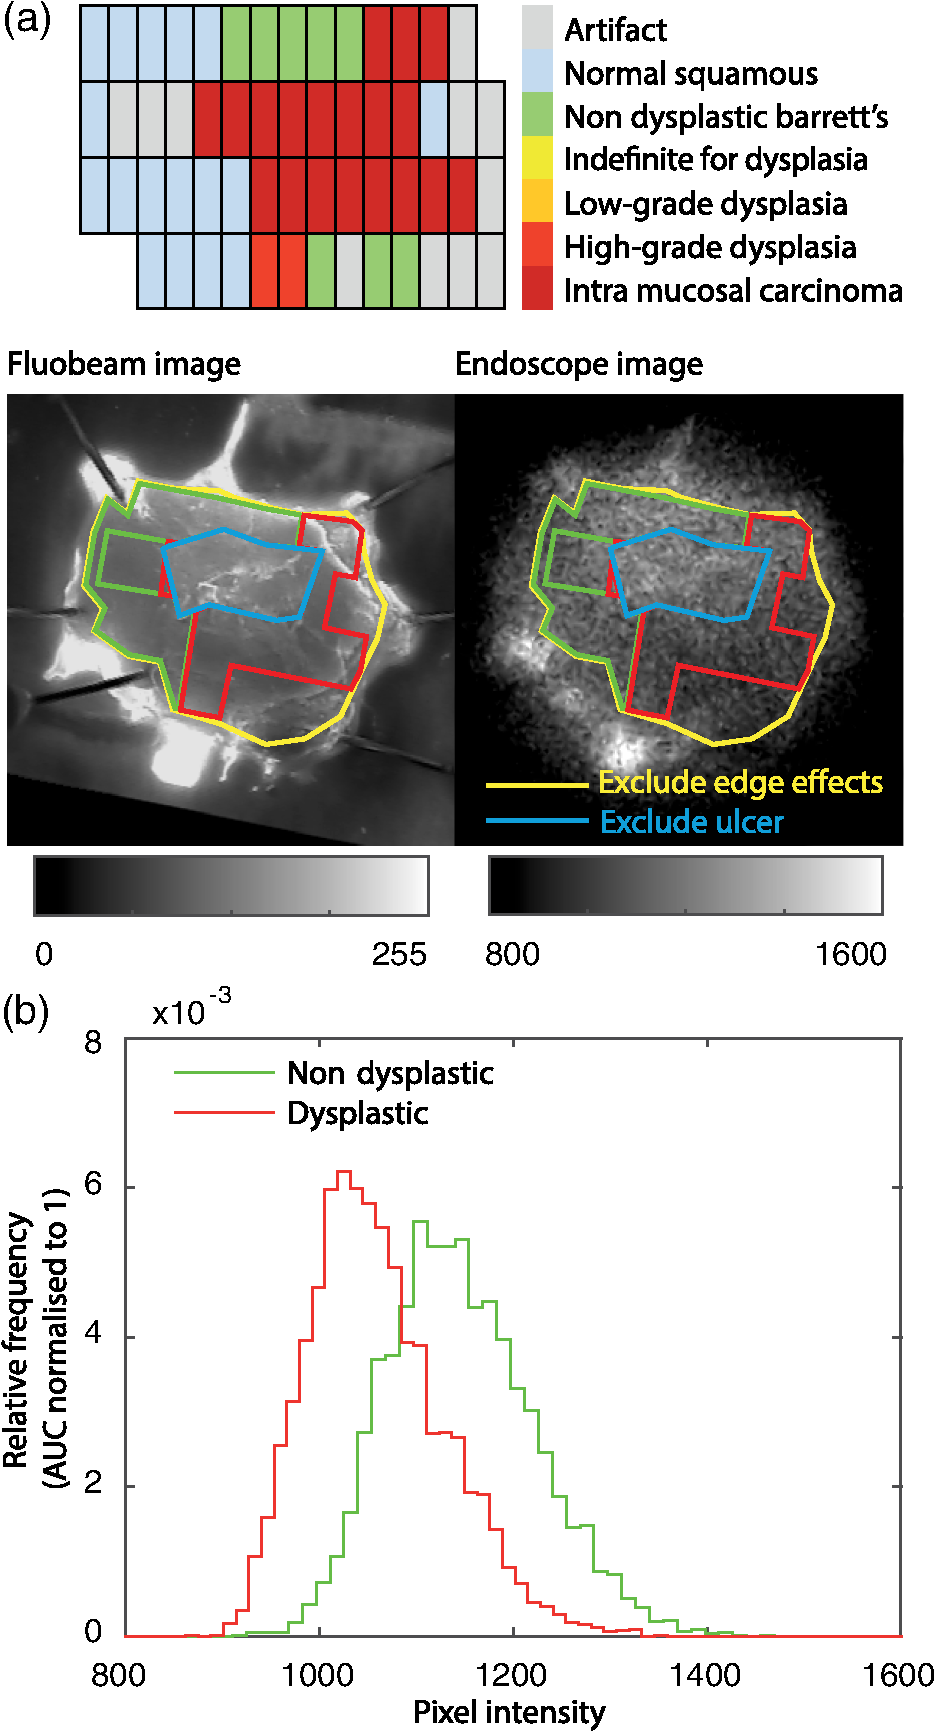 Design and validation of a near-infrared fluorescence